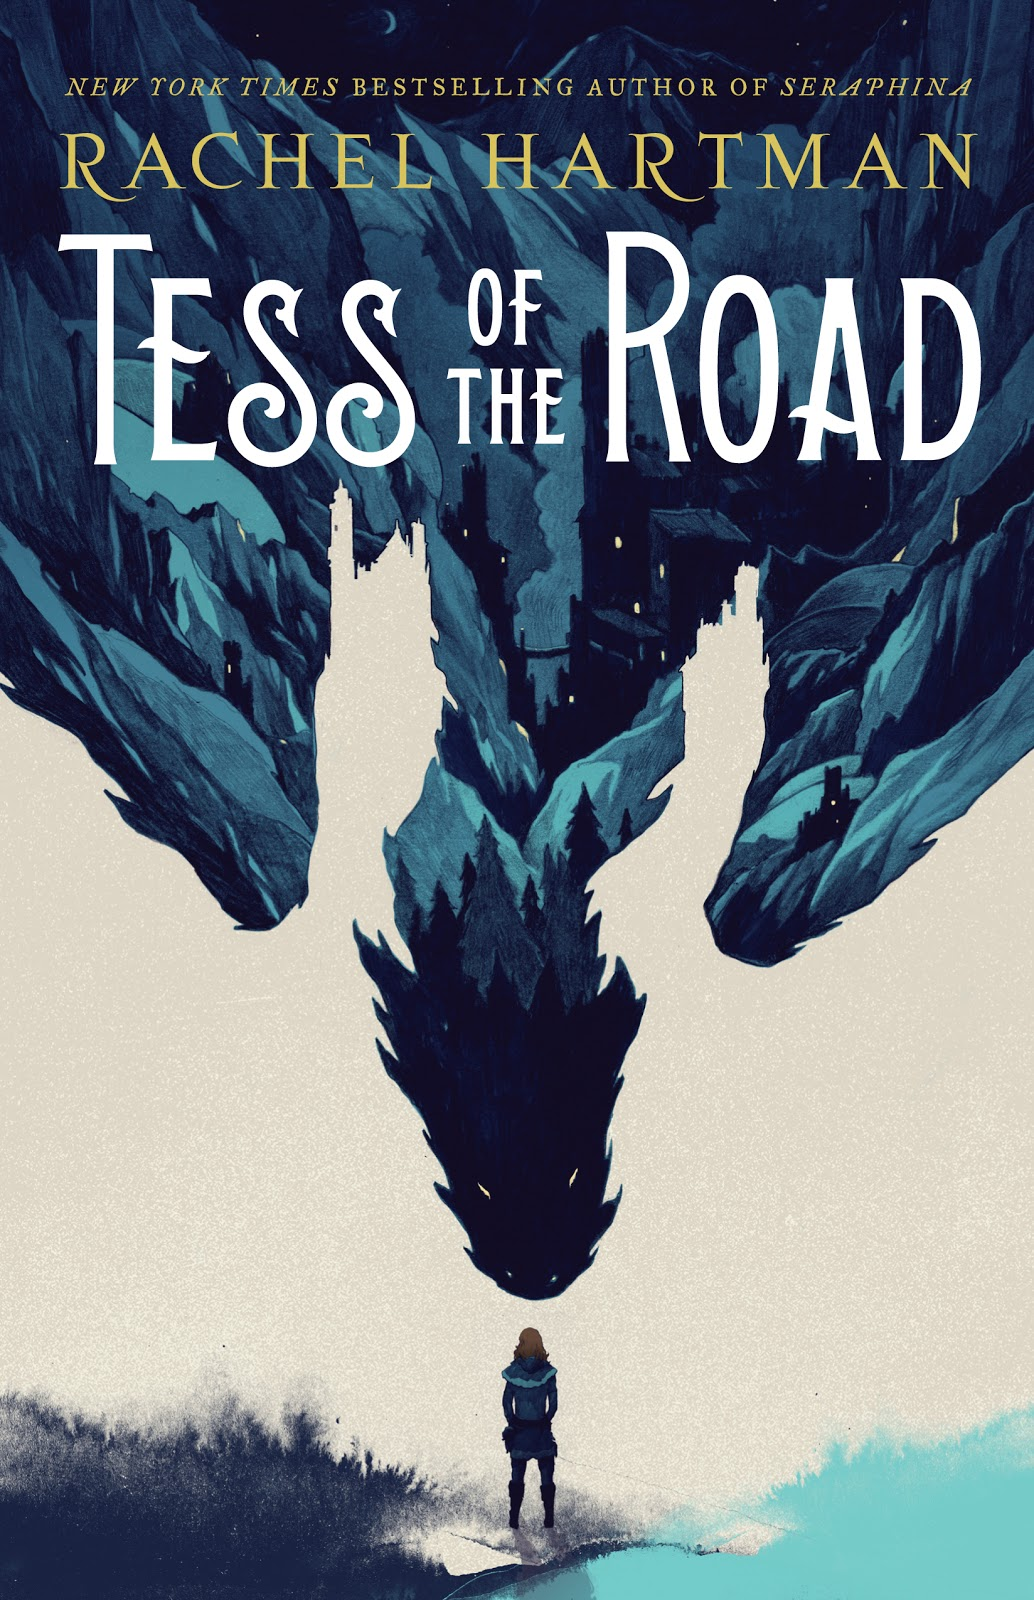 RESEÑA: TESS OF THE ROAD (RACHEL HARTMAN)